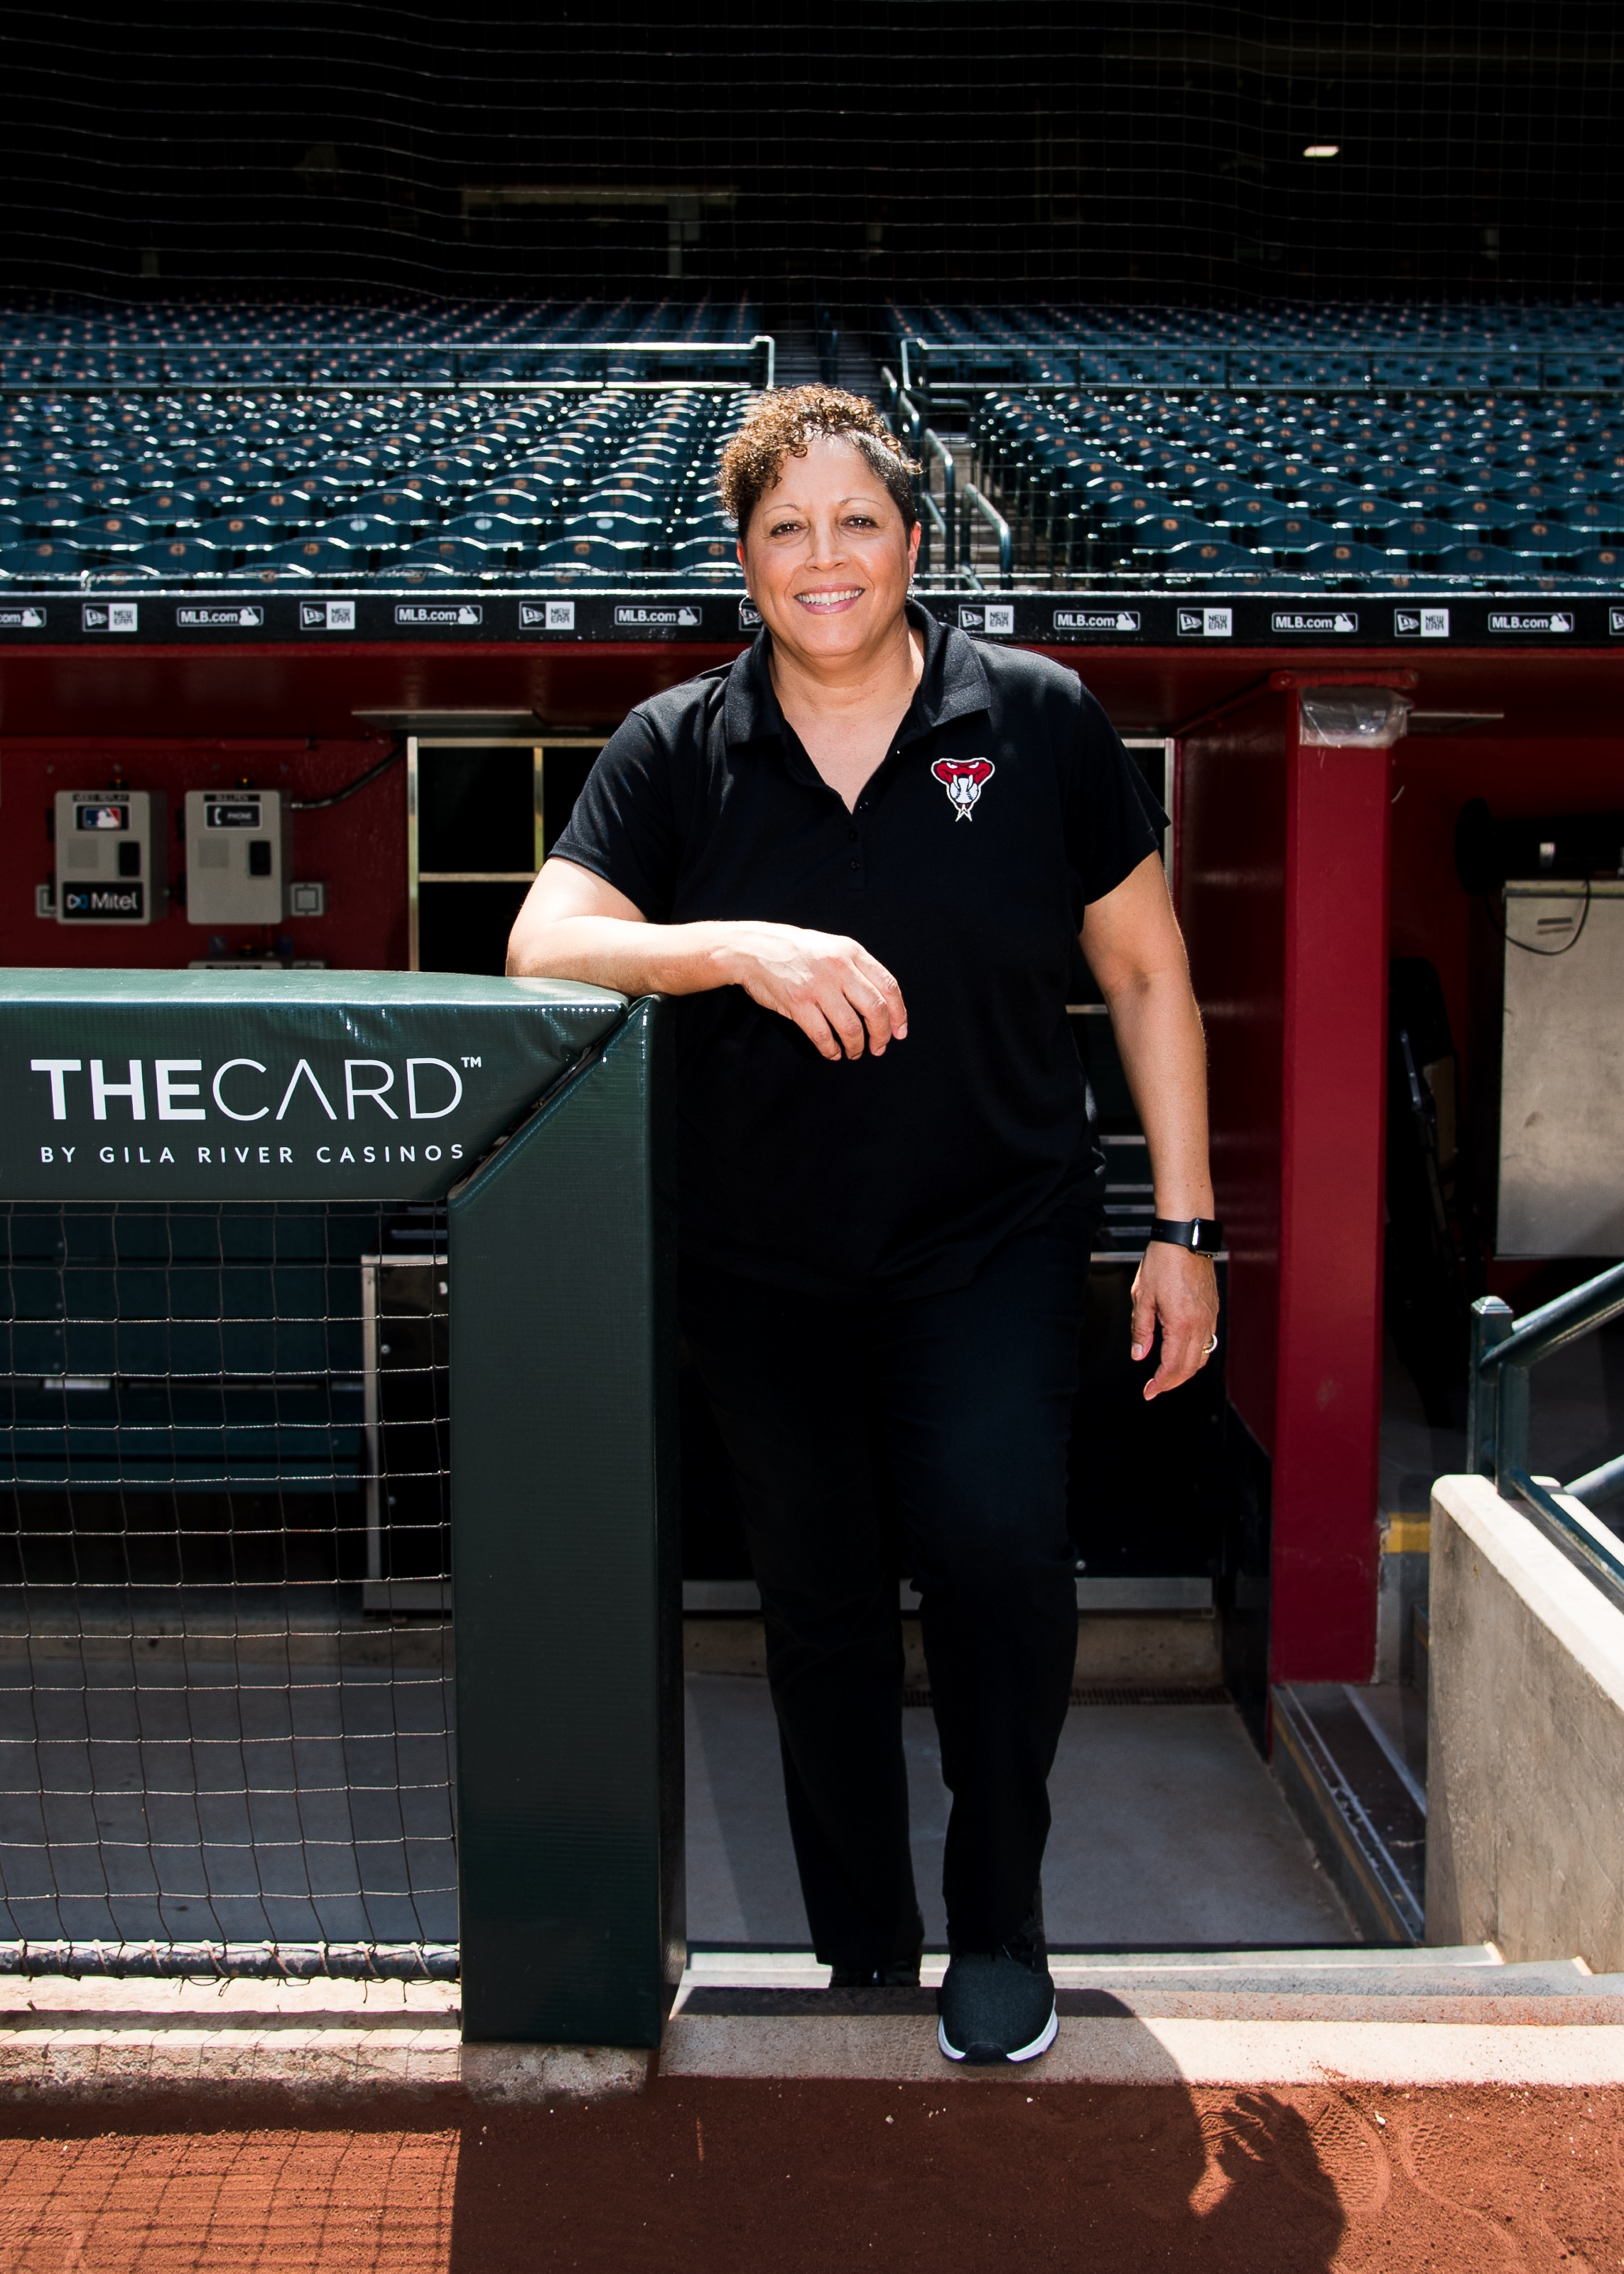 Nona Lee at Chase Field. She is the Arizona Diamondbacks Executive VP and Chief Legal Officer.